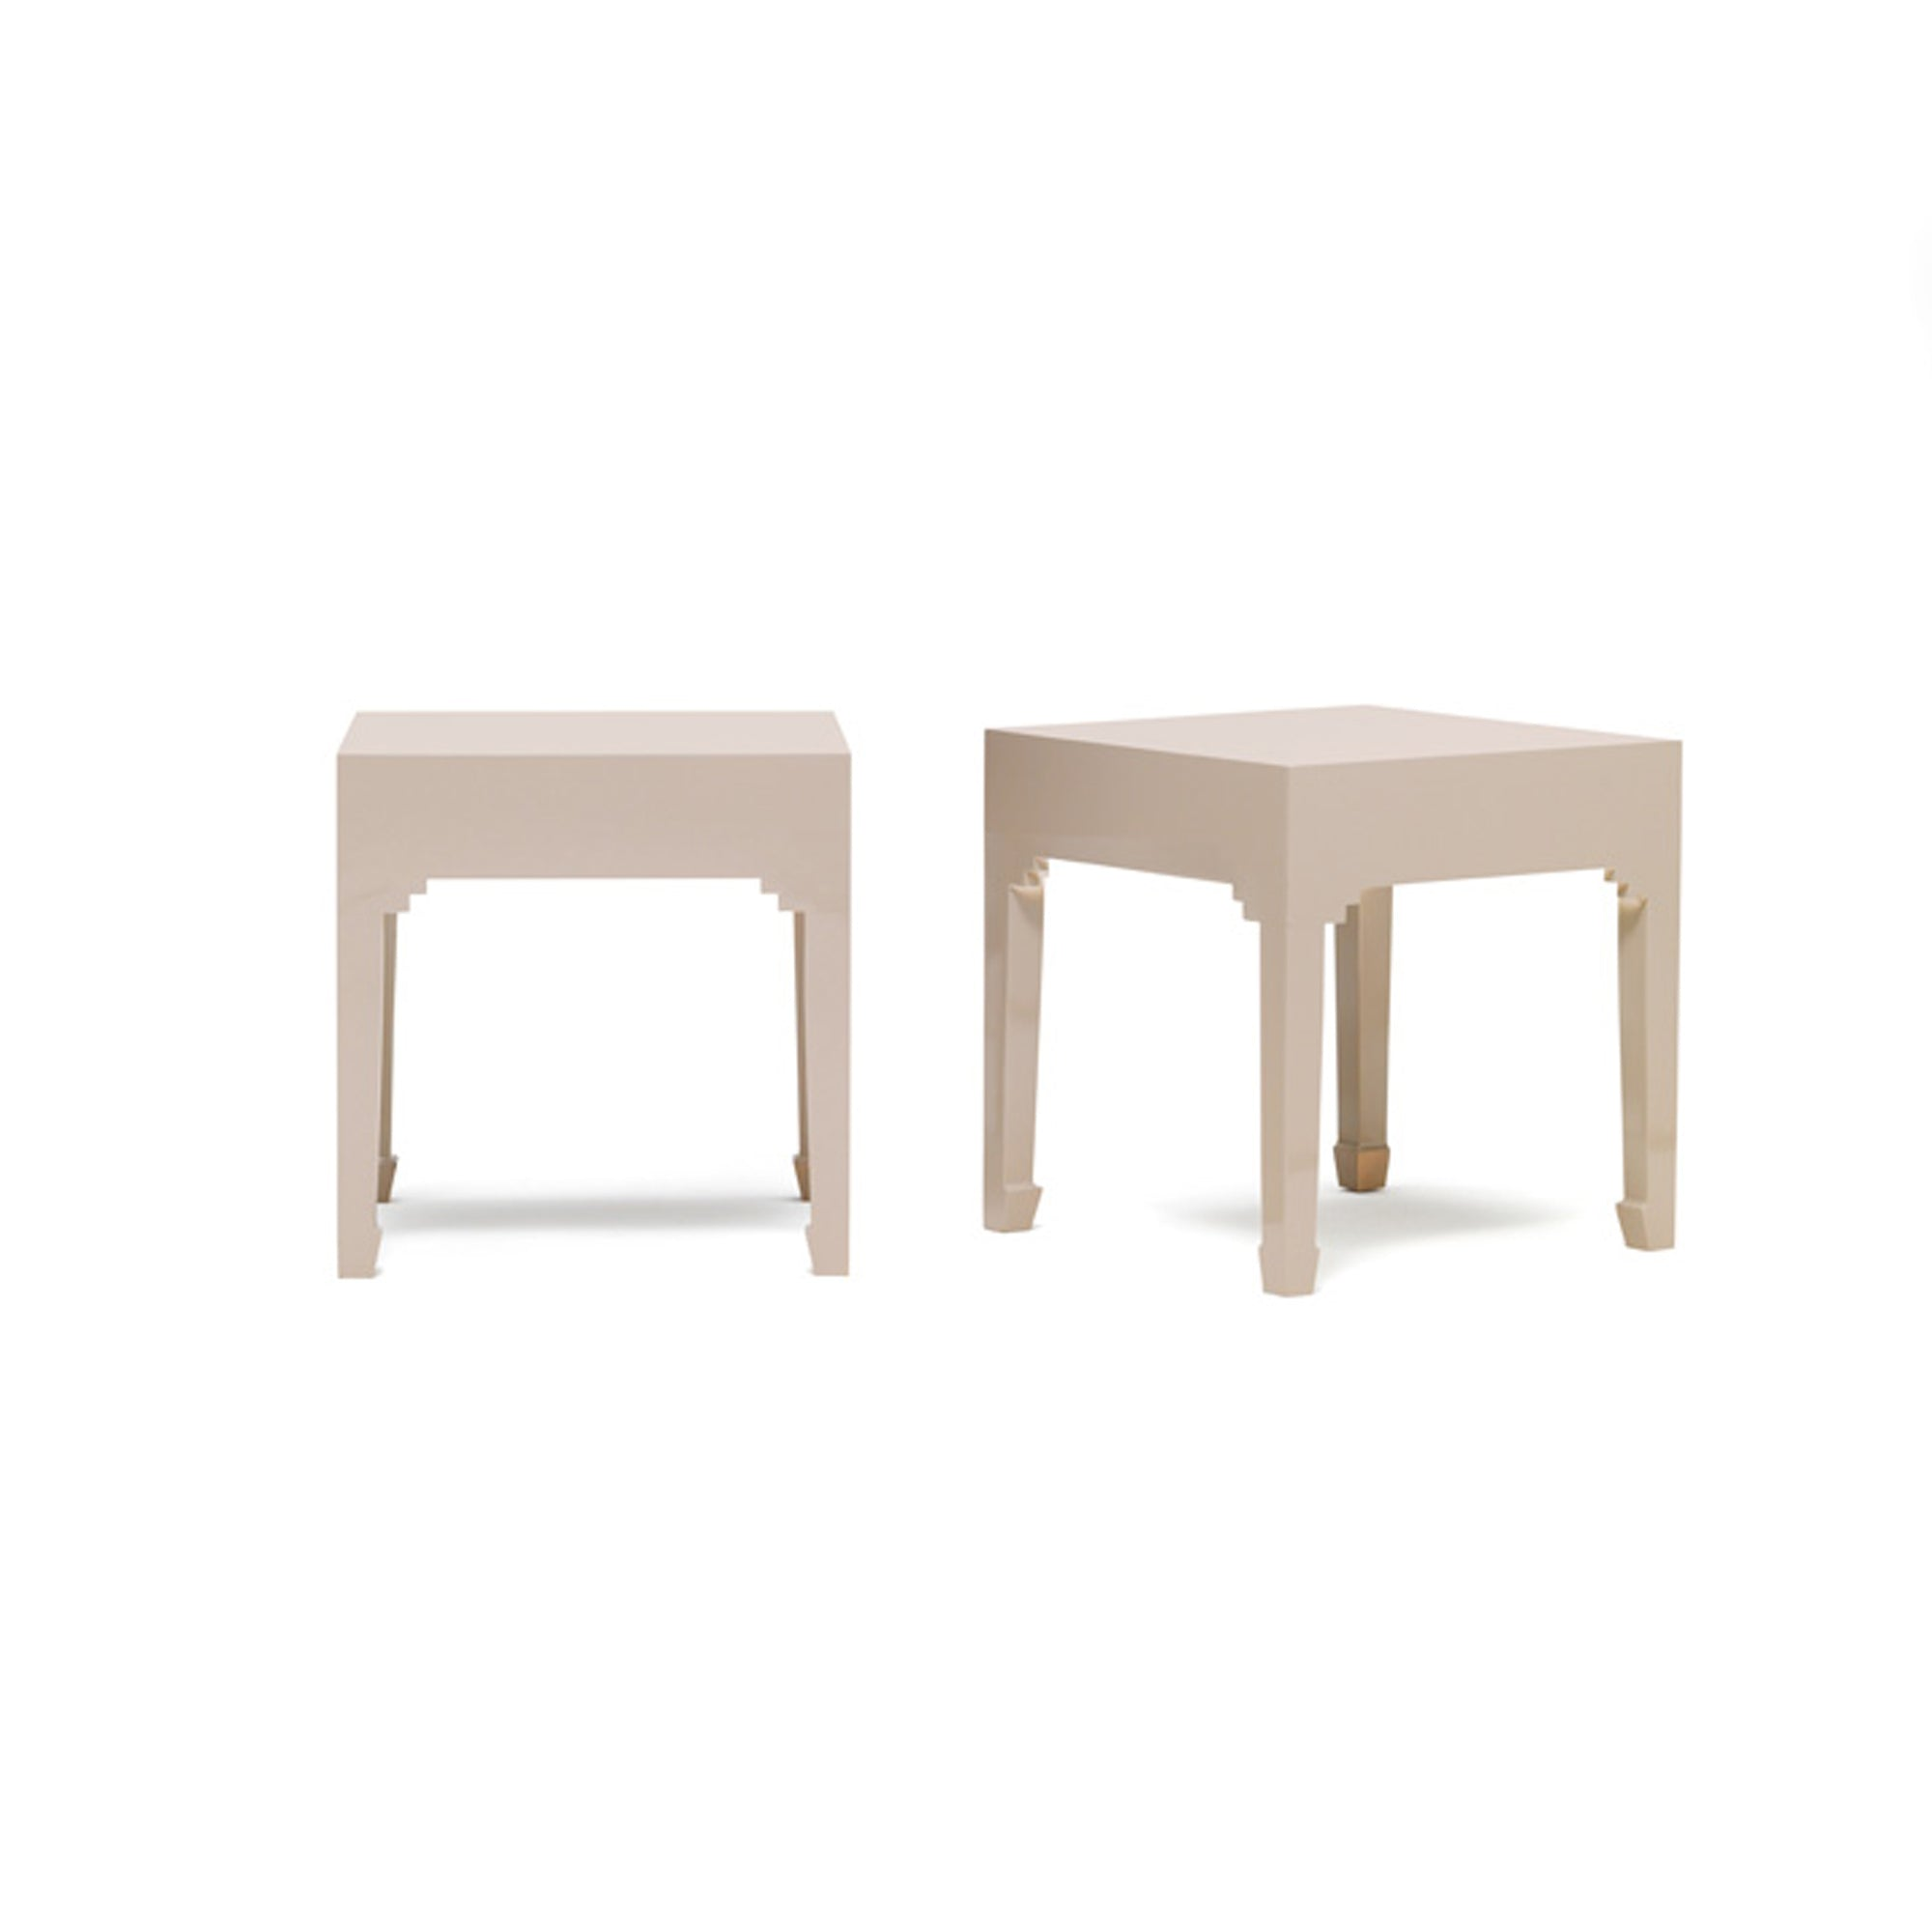 The Nine Schools Oyster Grey Pair of Lamp Tables by Roseland Furniture